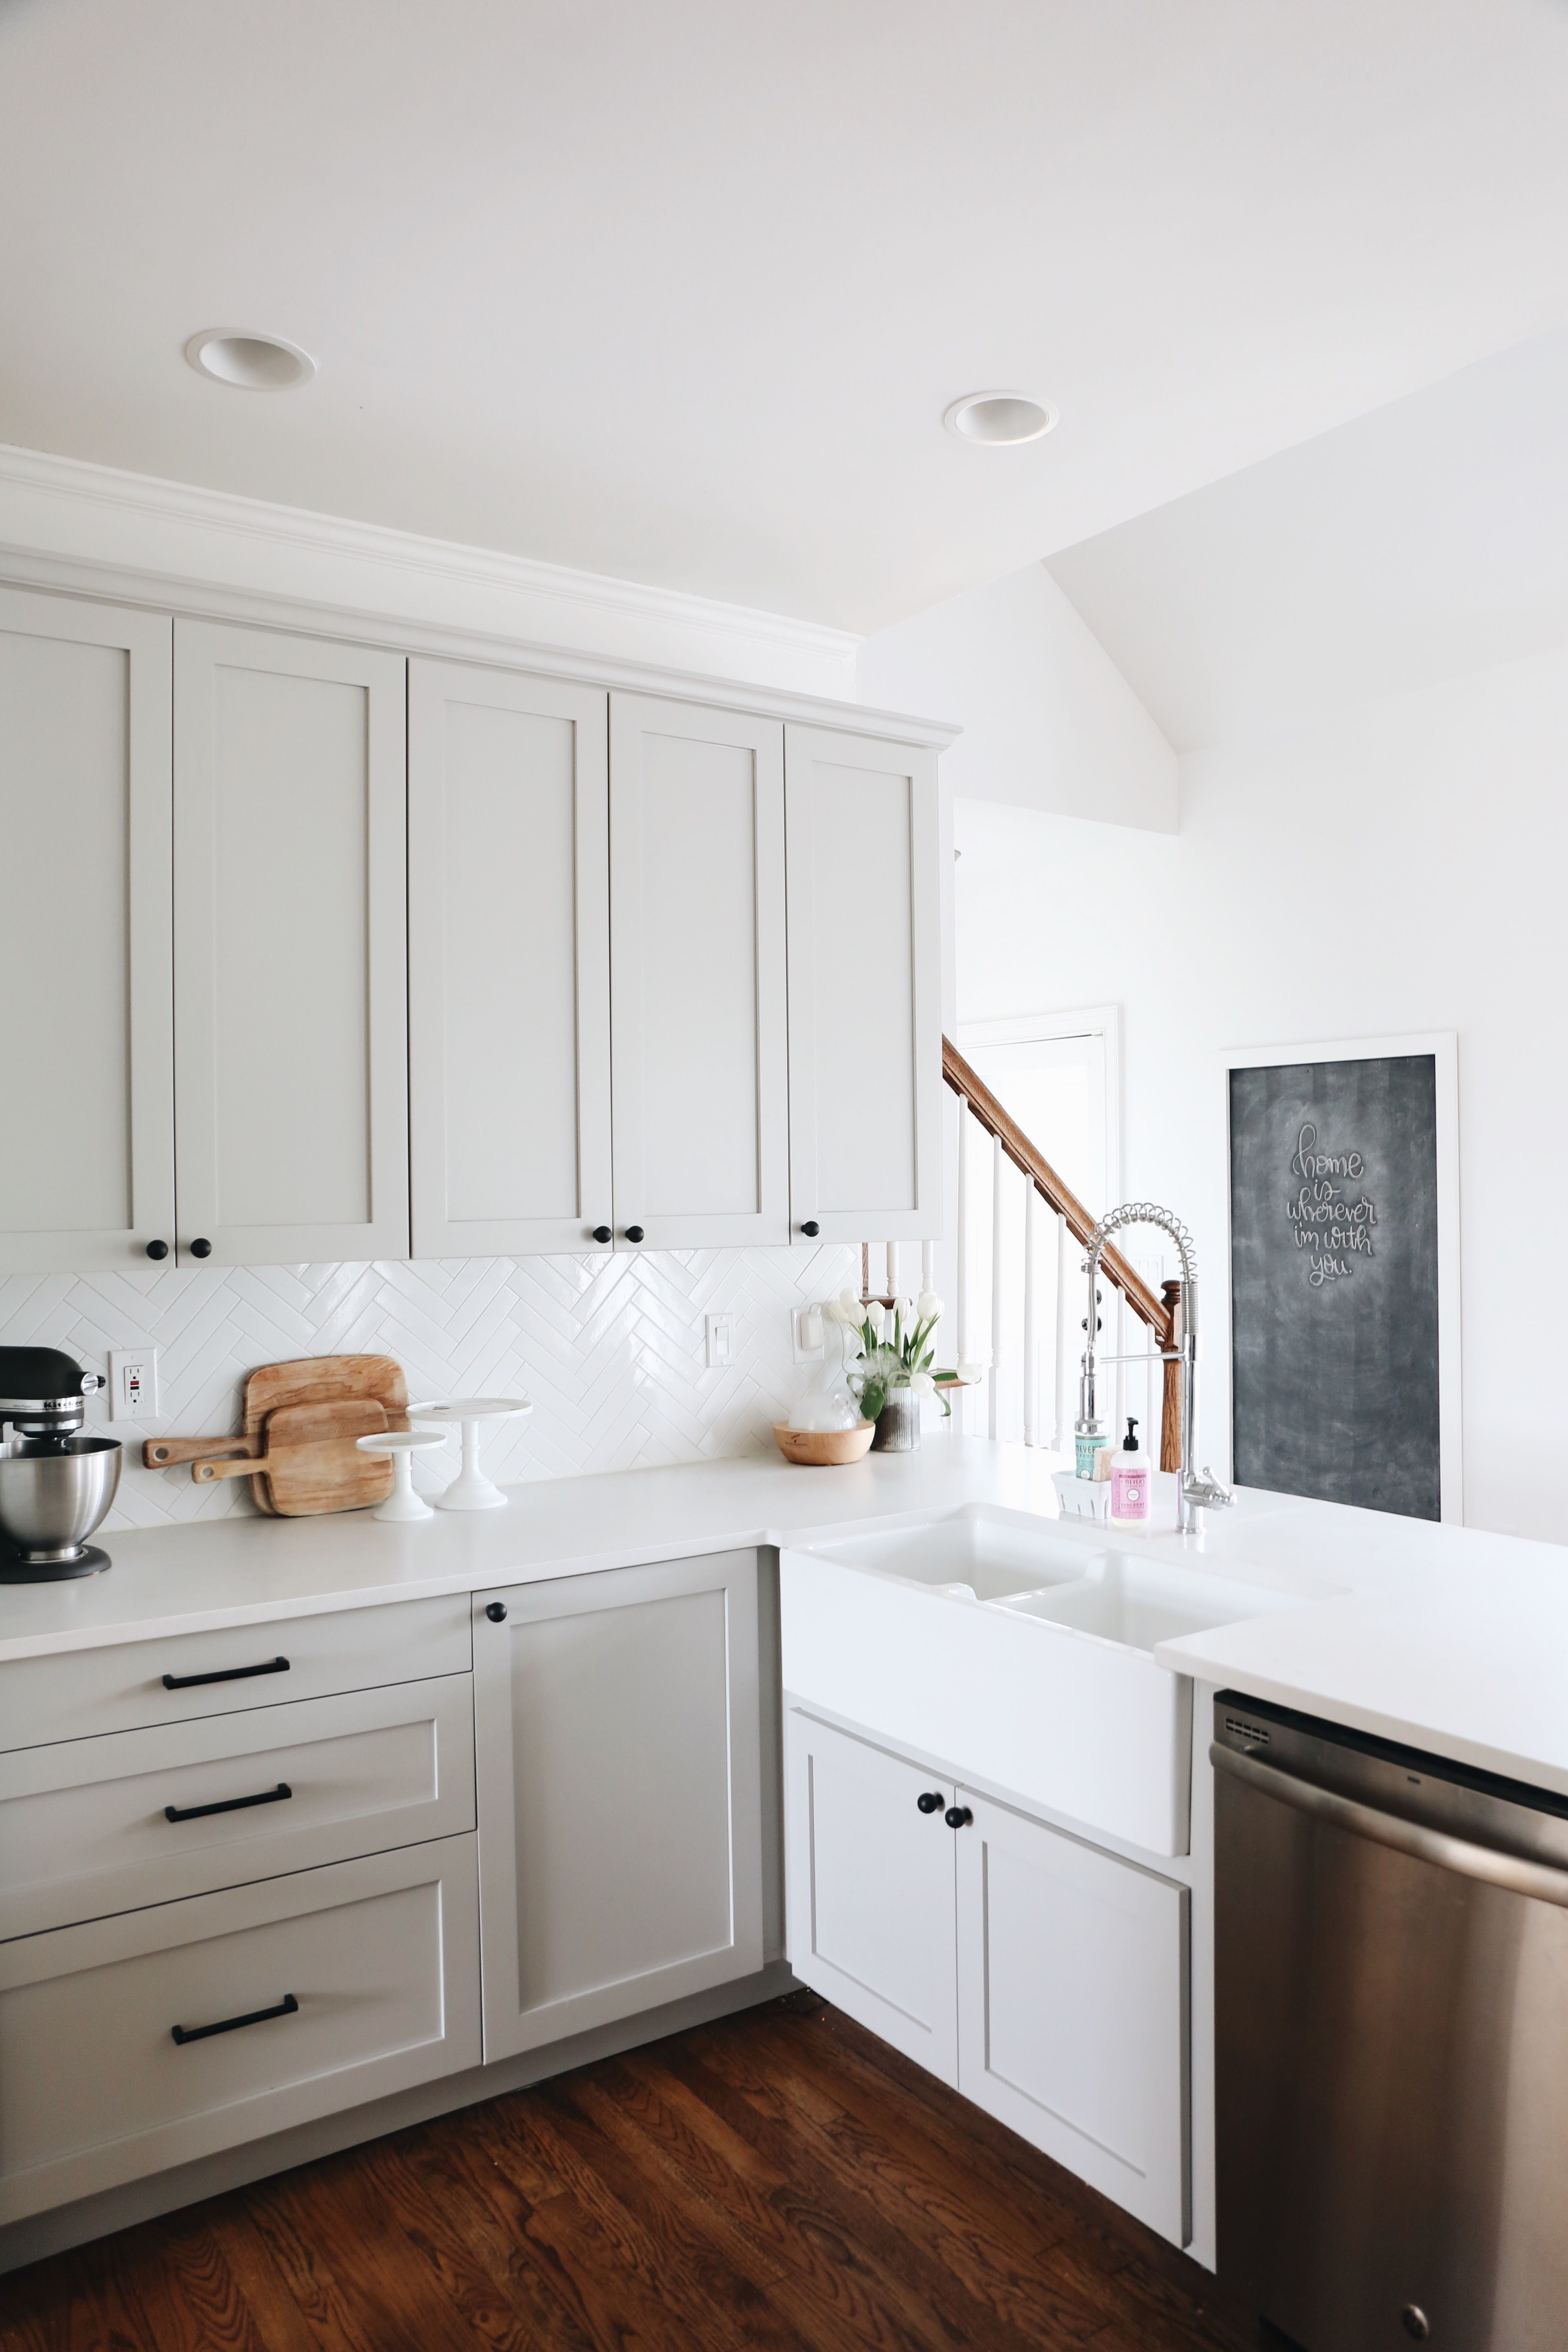 Luxury Can You Stack Ikea Kitchen Cabinets Kitchen Cabinet